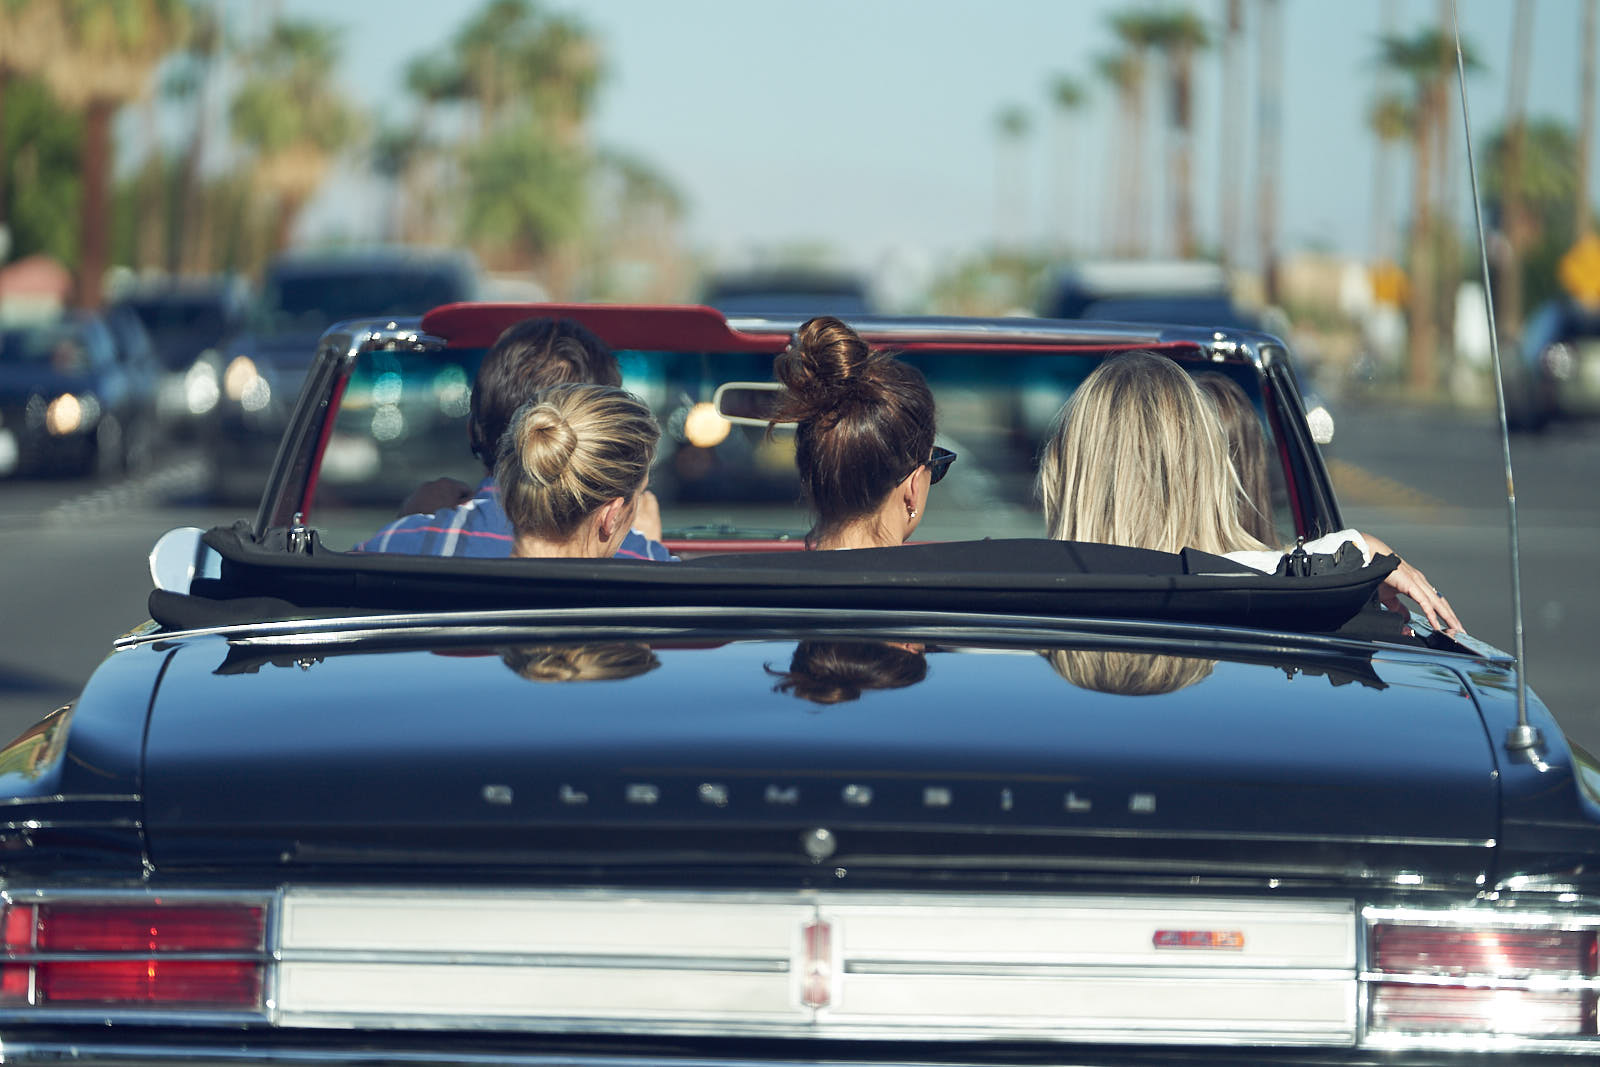 Tash Oakleigh & Devon Brugman on their way to BEAR launch Frank Sinatra's House Palm Springs by Lost In Love Photography